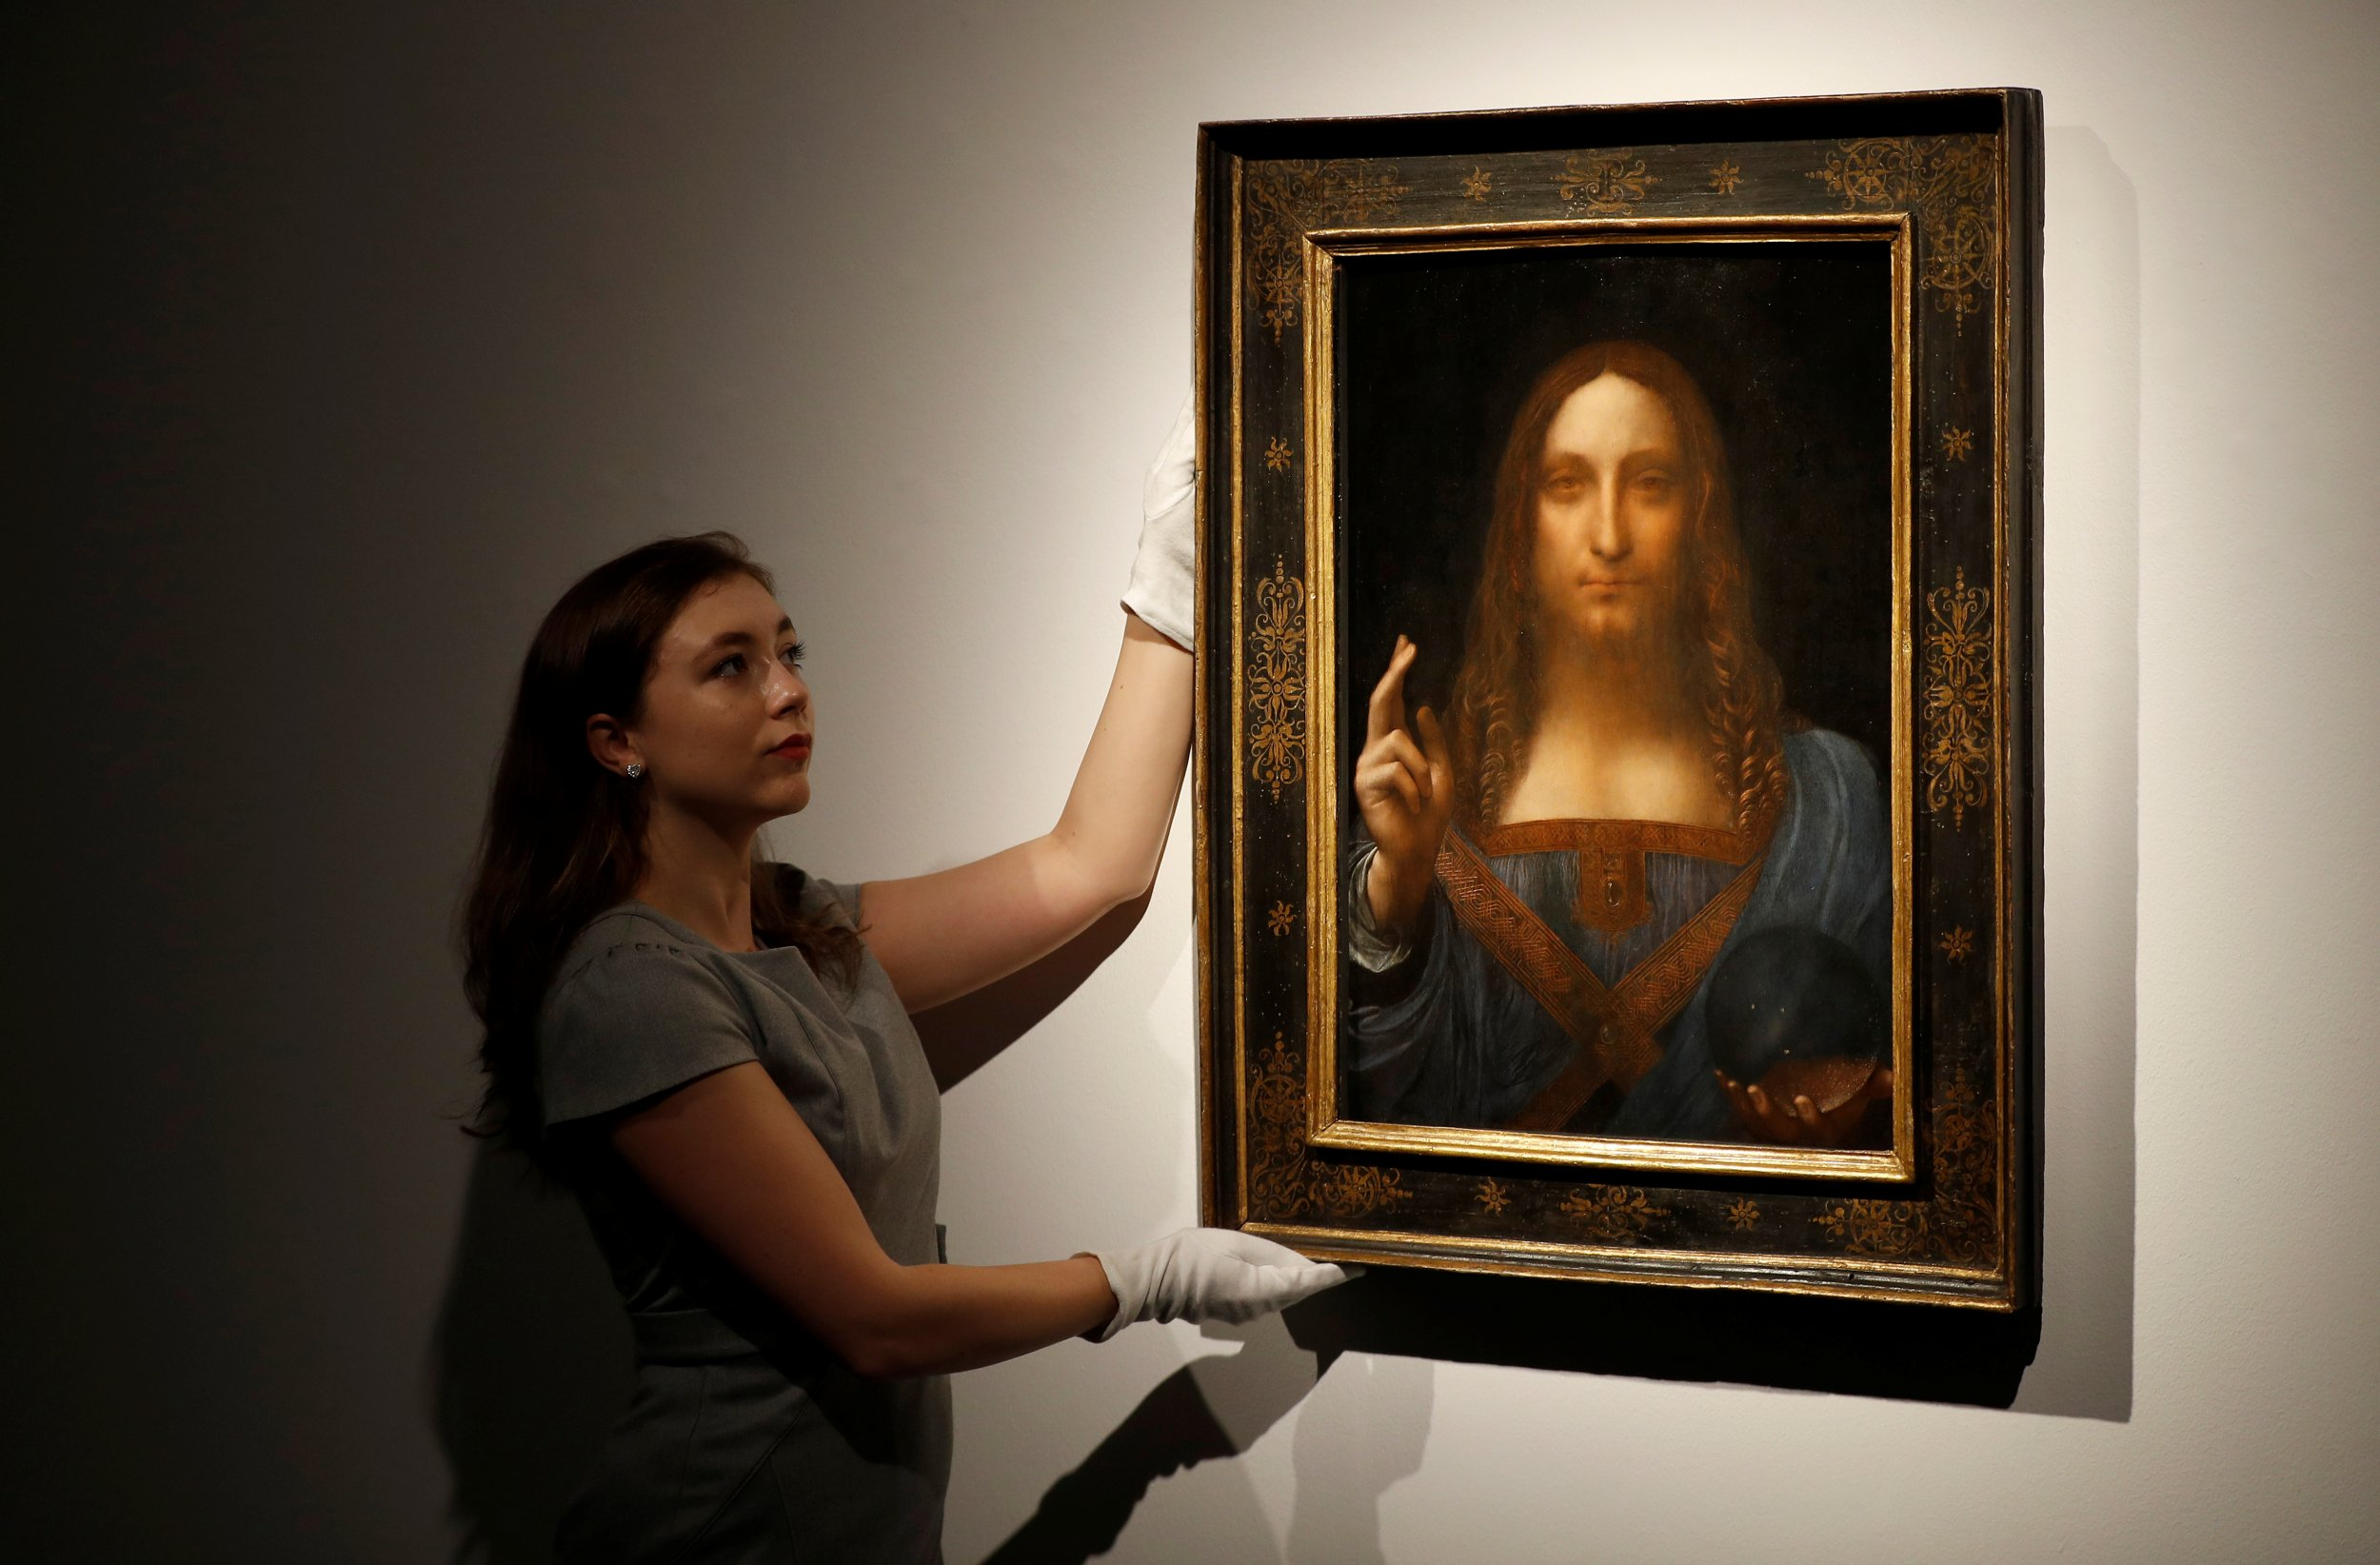 A leonardo da vinci portrait of jesus bought for 10 000 for What is the most expensive painting